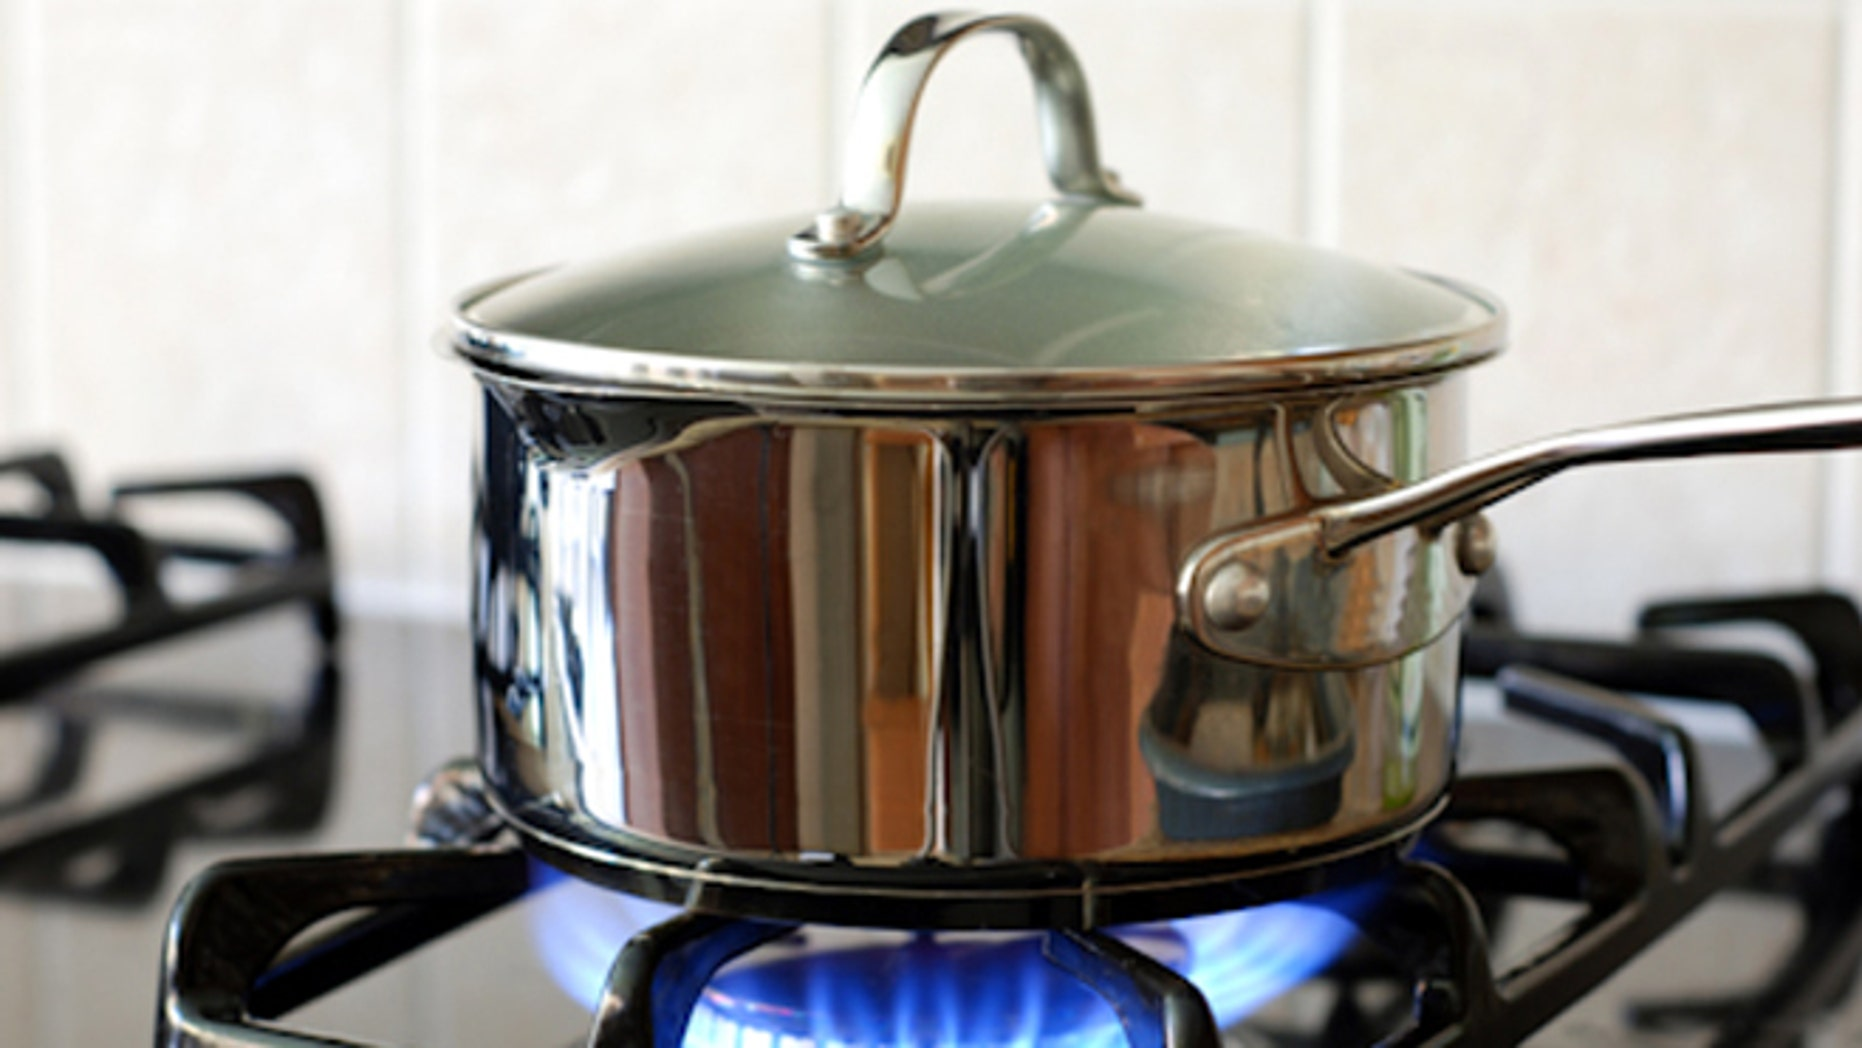 A husband reportedly took his wife to court because he was insulted over her lack of cooking and cleaning.